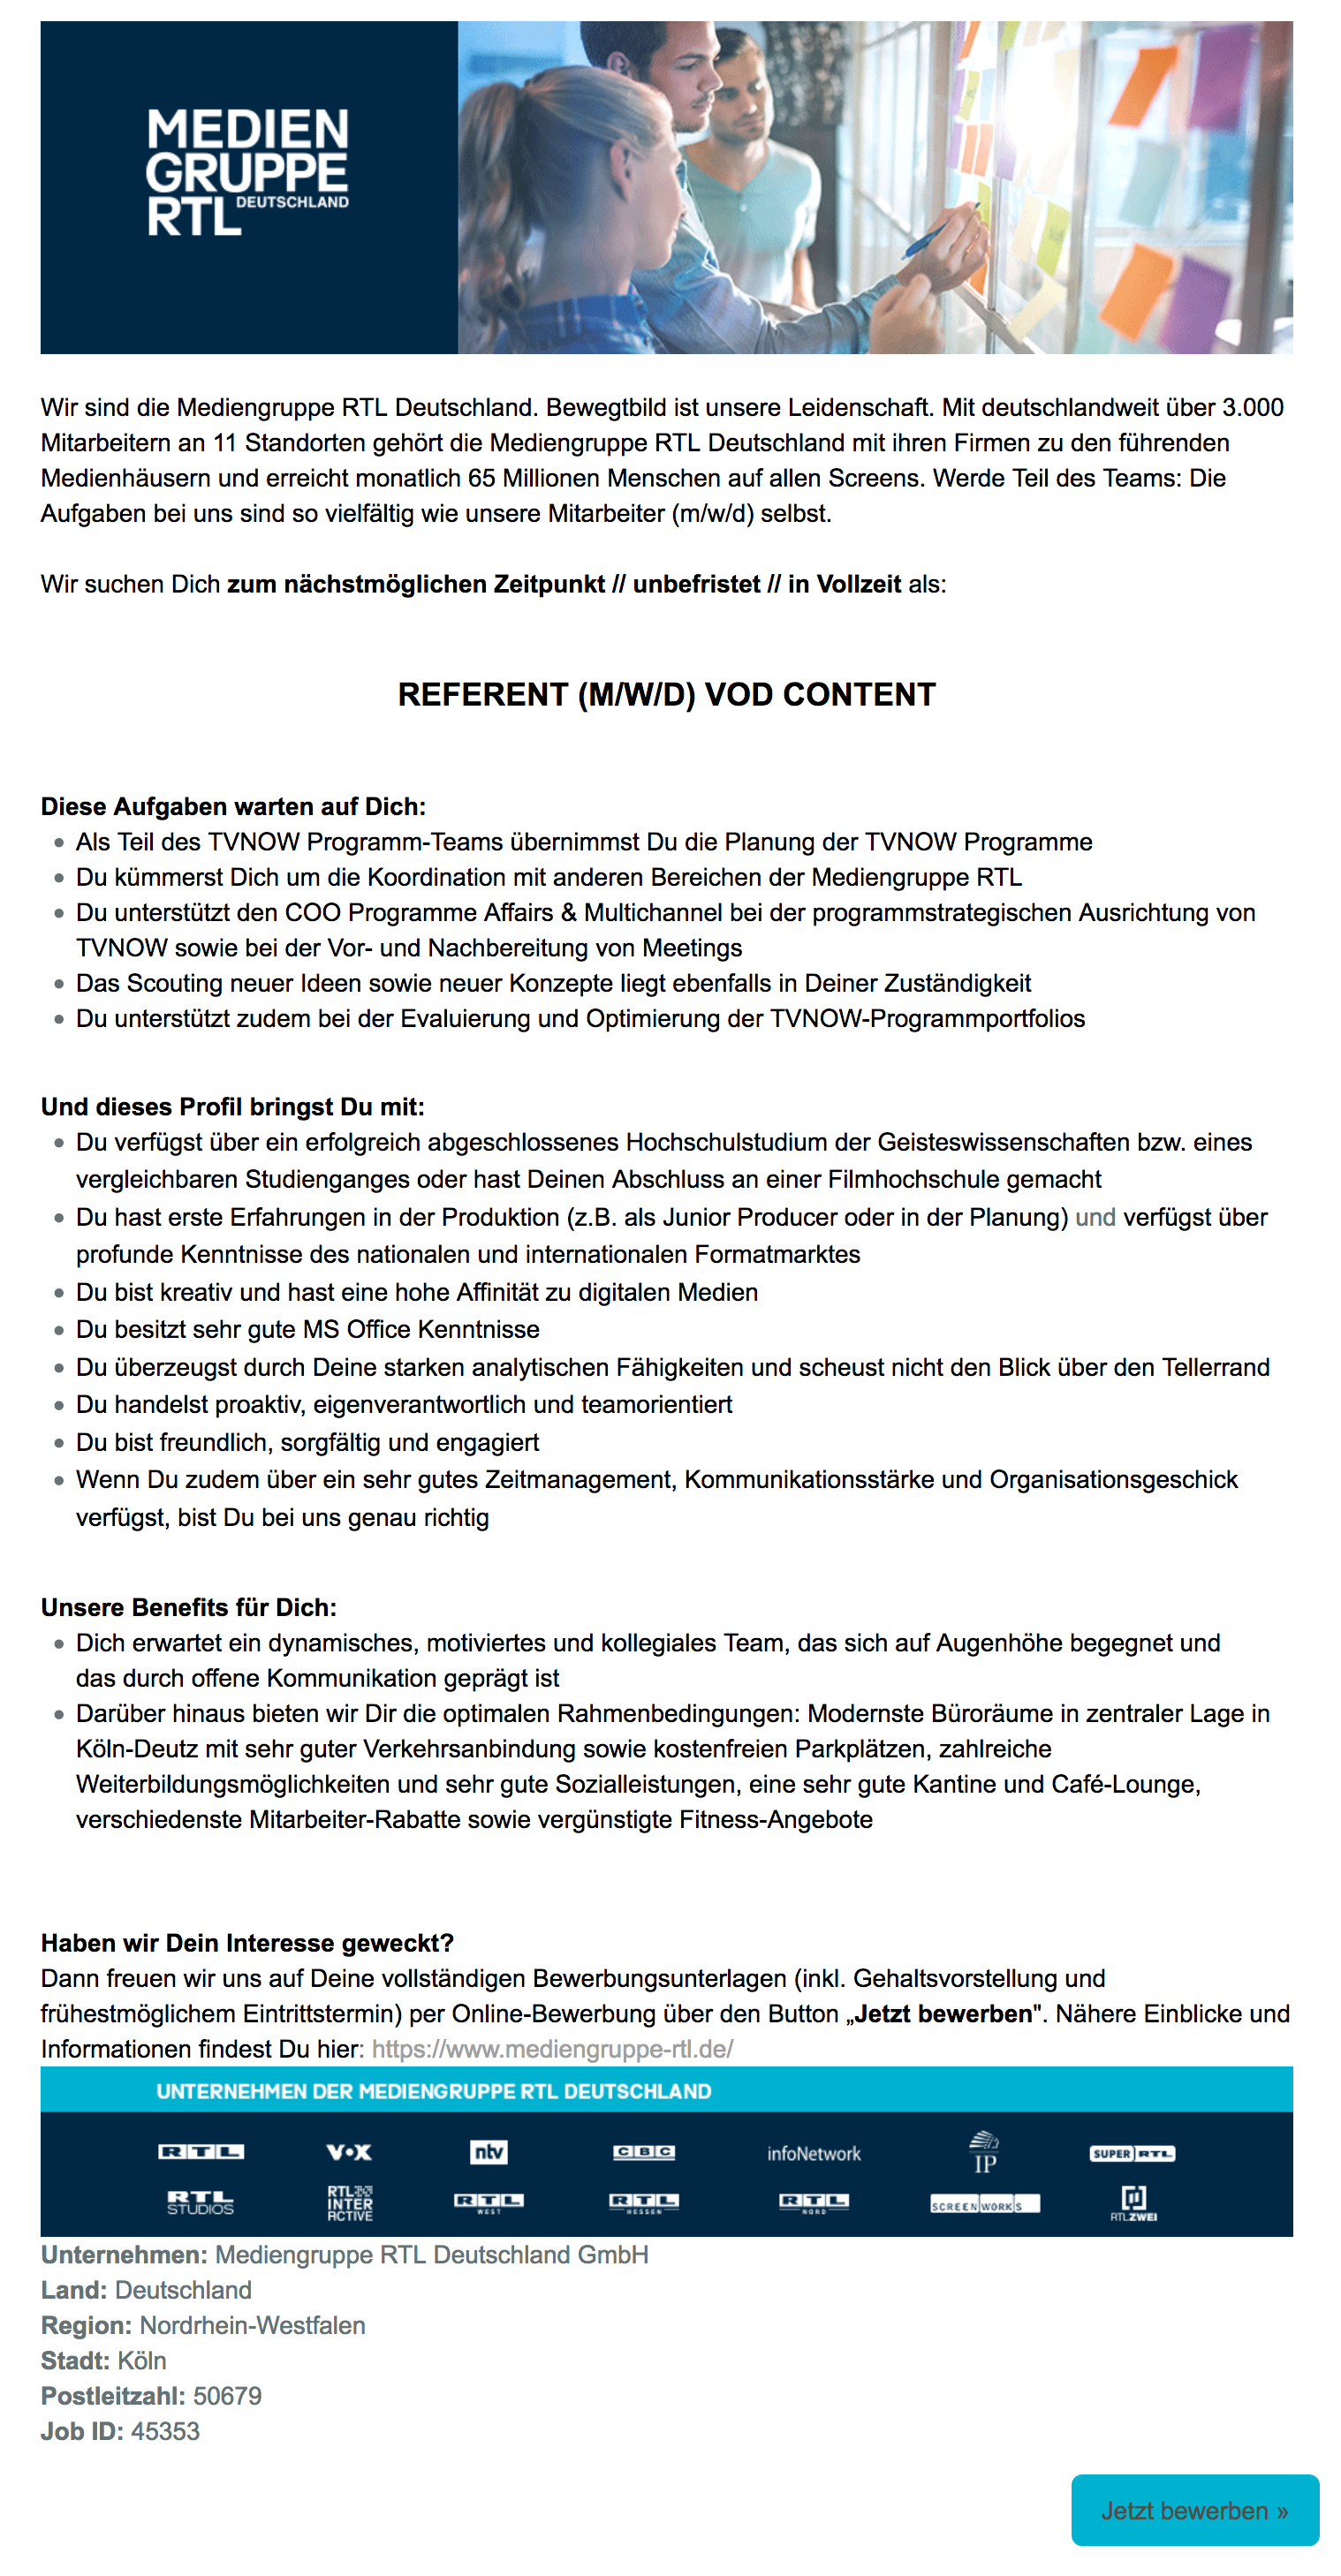 Referent (m/w/d) VoD Content